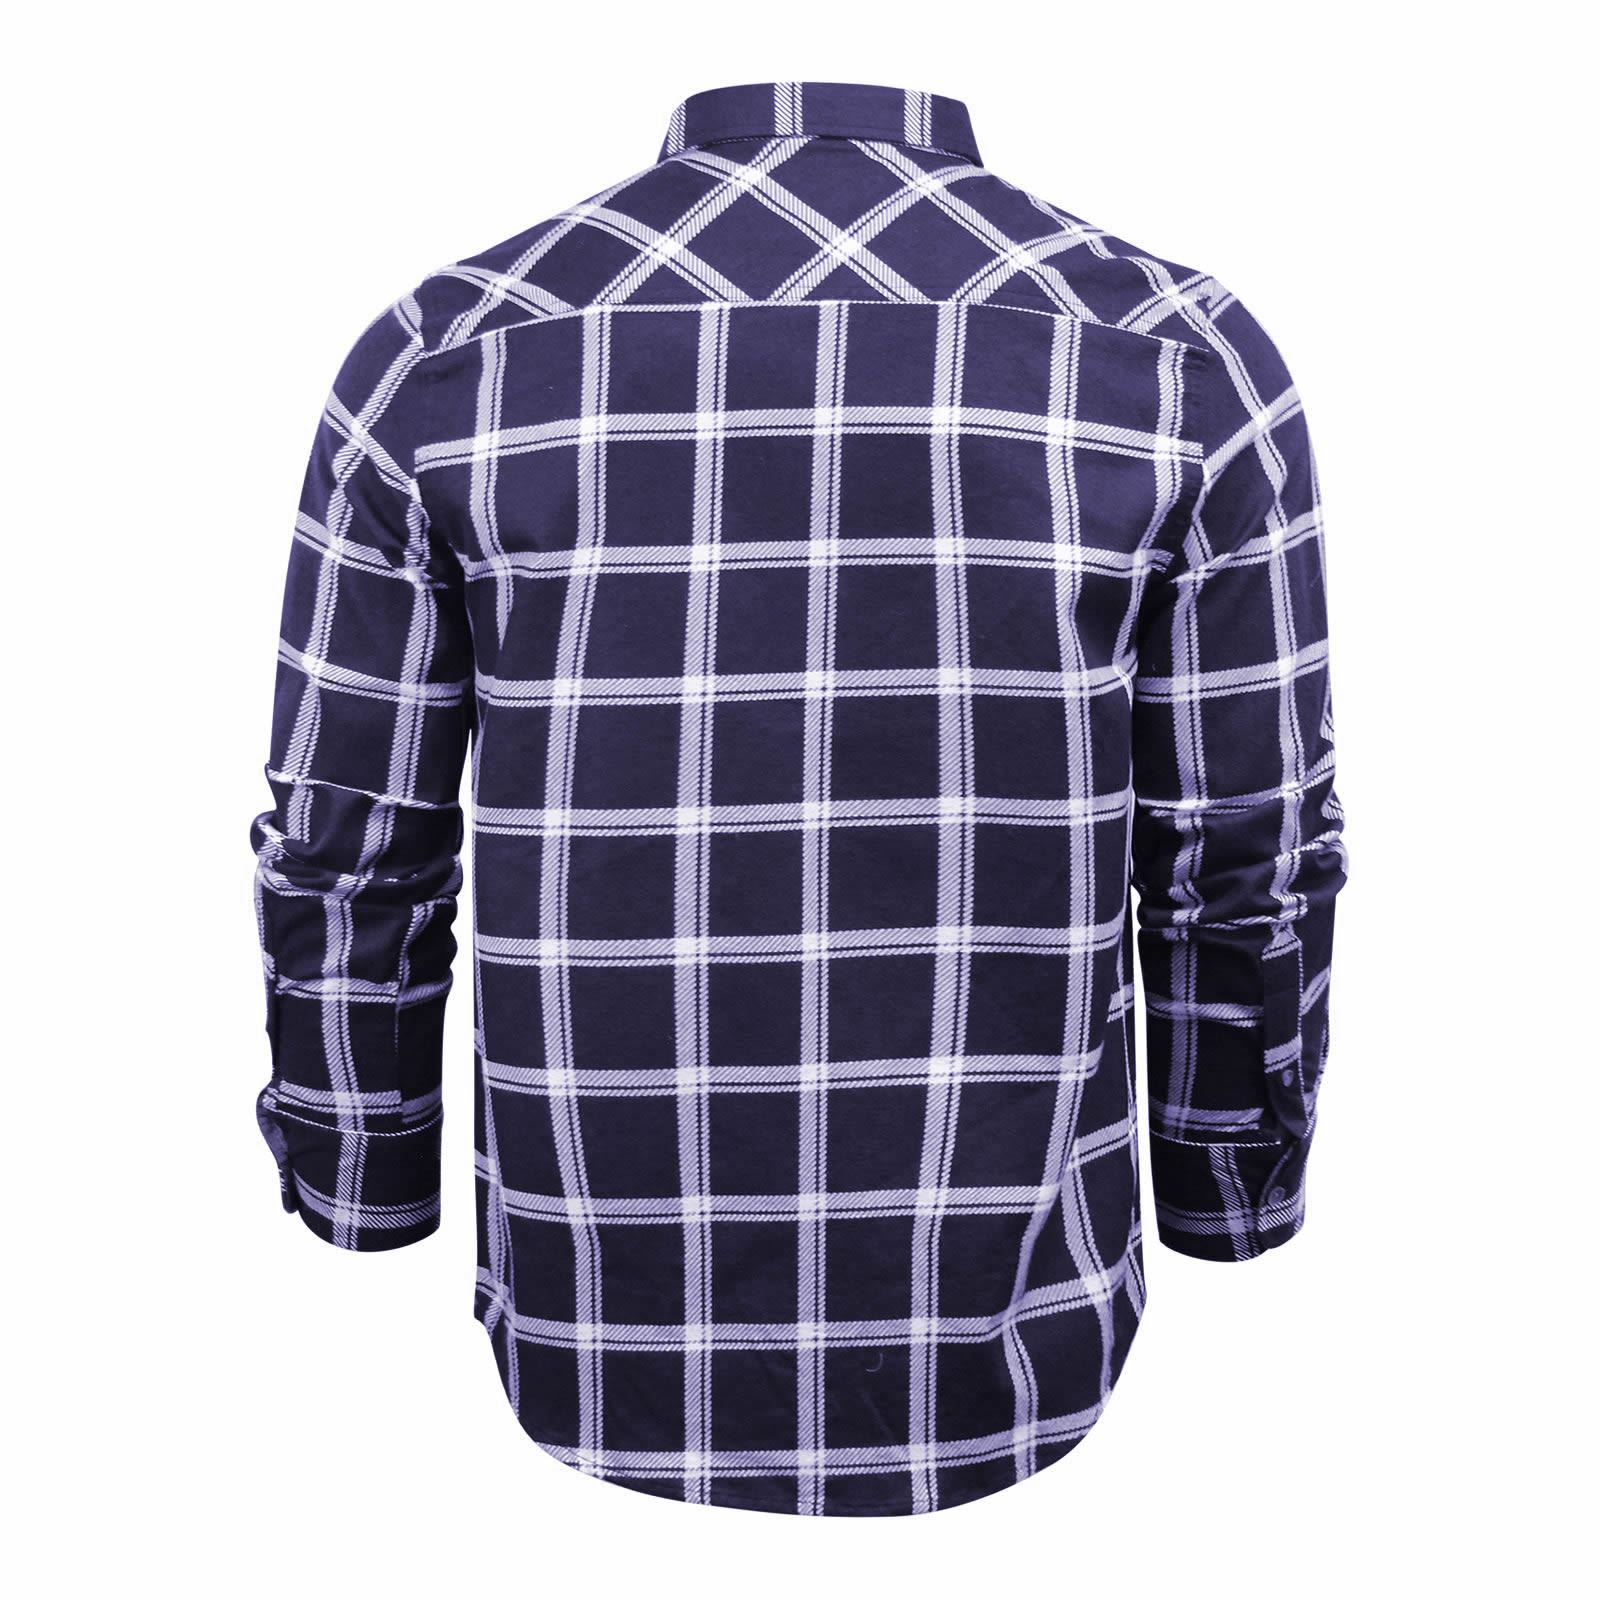 Mens-Check-Shirt-Brave-Soul-Flannel-Brushed-Cotton-Long-Sleeve-Casual-Top thumbnail 105